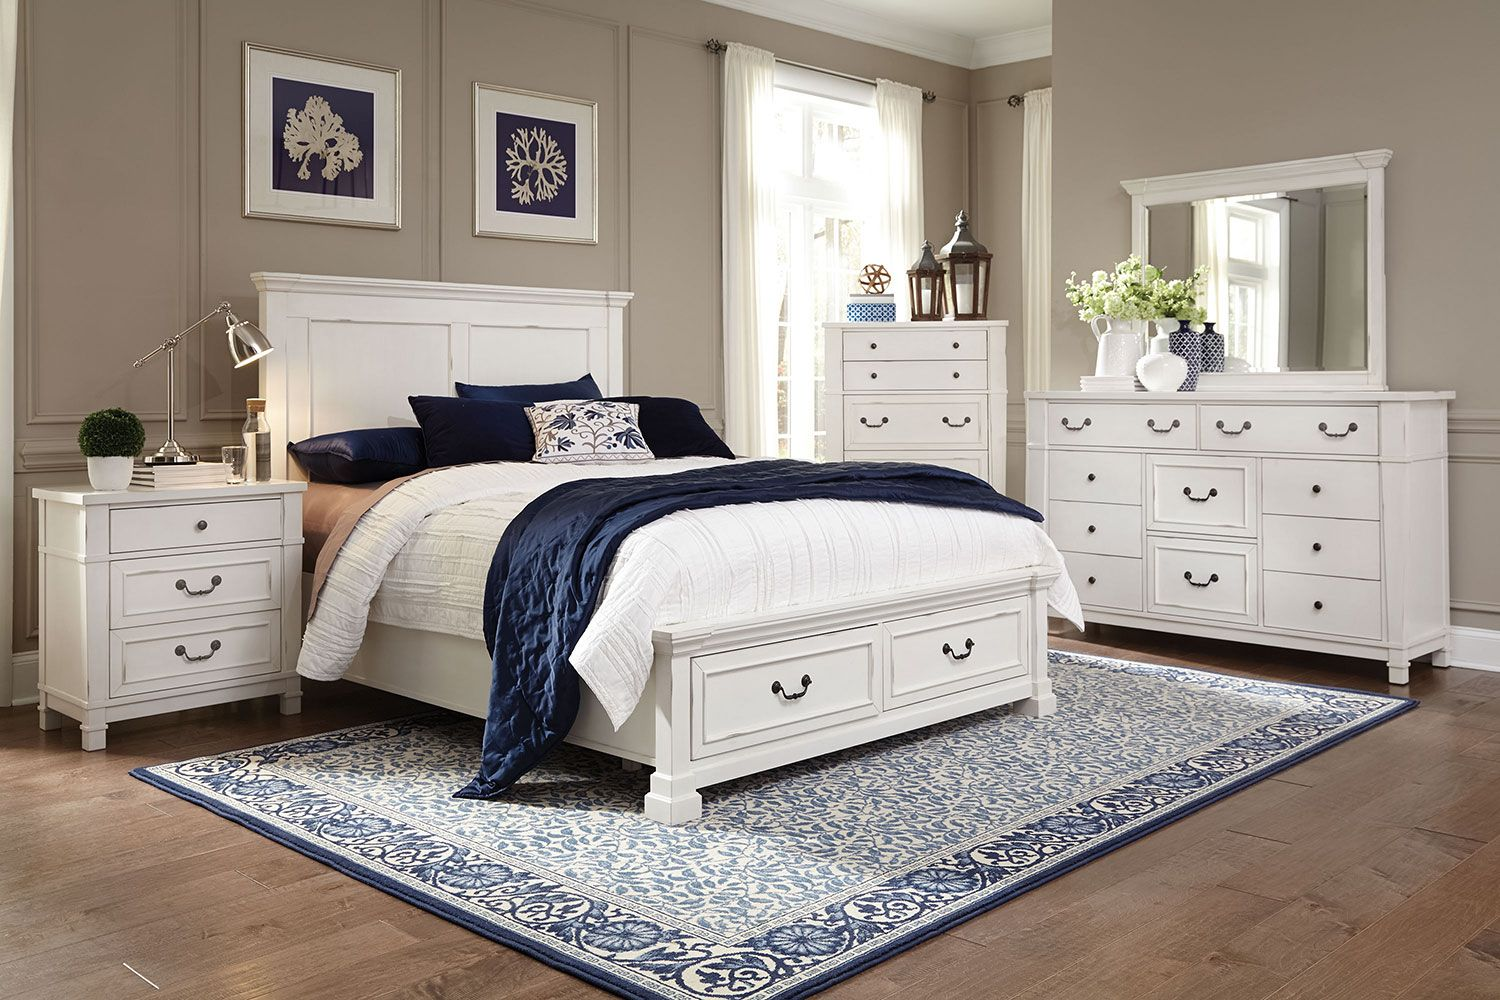 Bedroom Furniture   Taryn 4 Piece King Storage Bedroom Set   Antique     Shop at Levin s for a wide selection of furniture and mattresses  Enhance  your home with stylish furniture from our stores across Pennsylvania and  Ohio